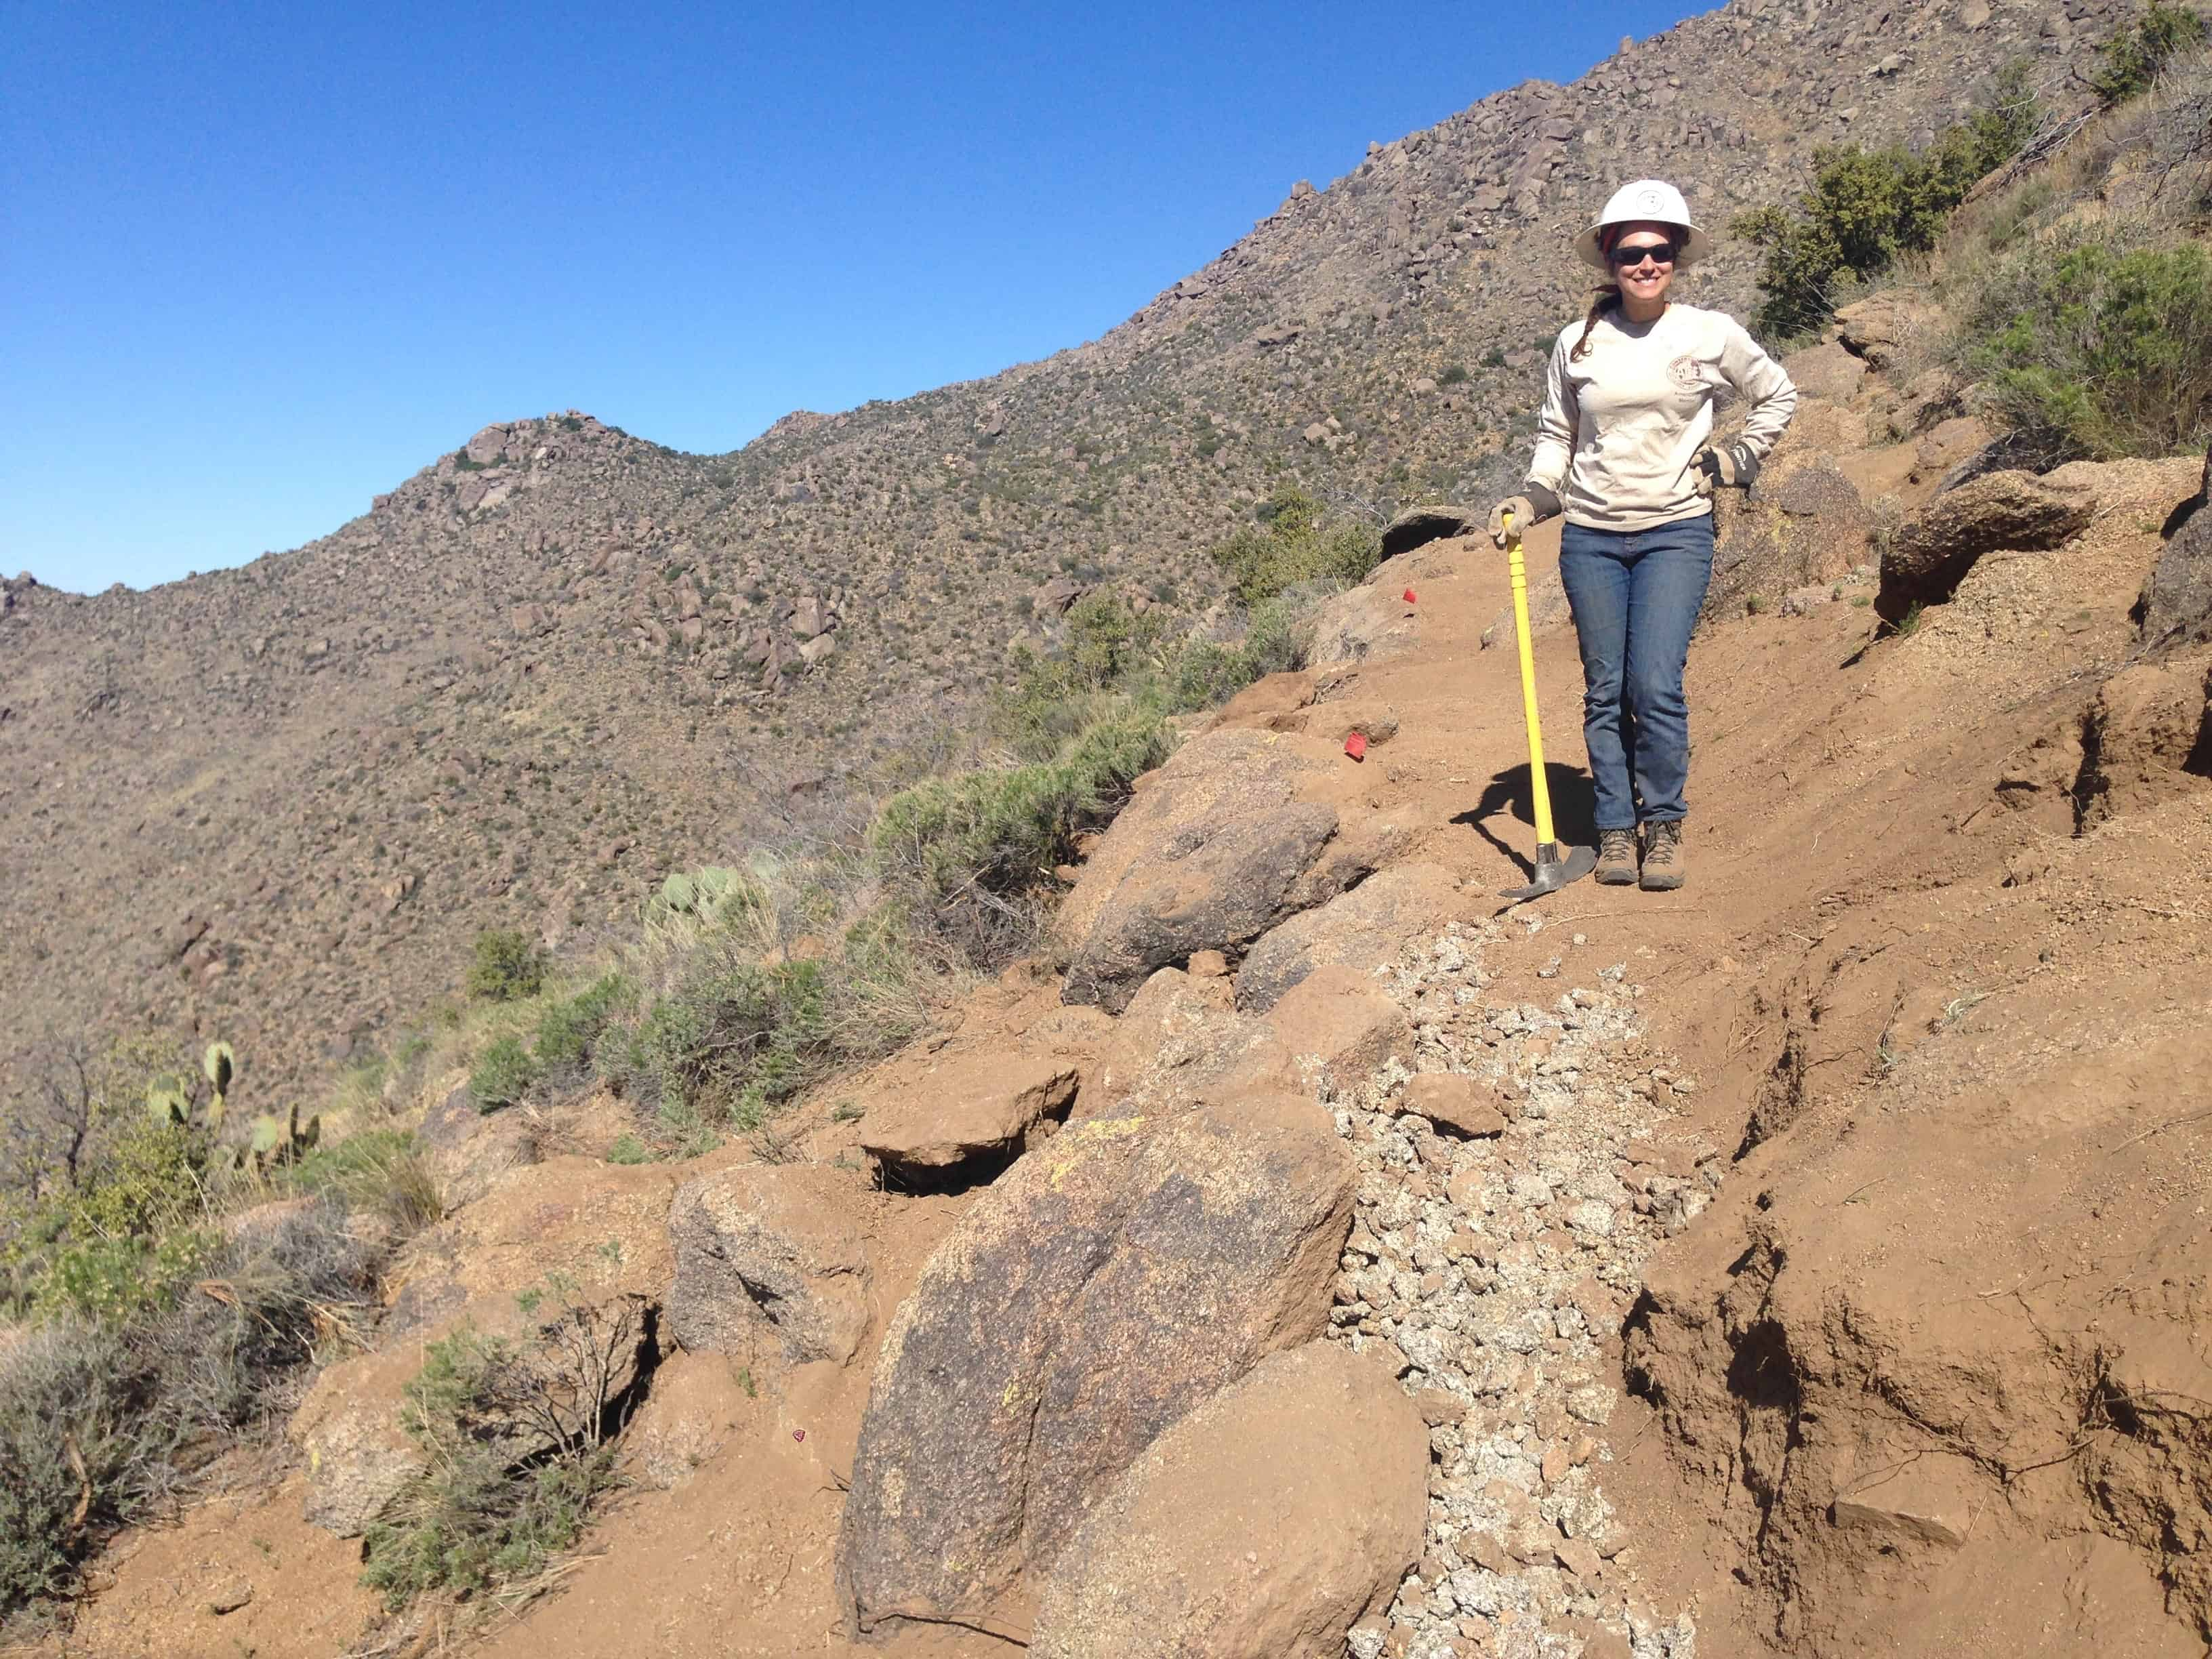 Standing at a trail I helped build in the mountainous desert in Arizona in the conservation corps